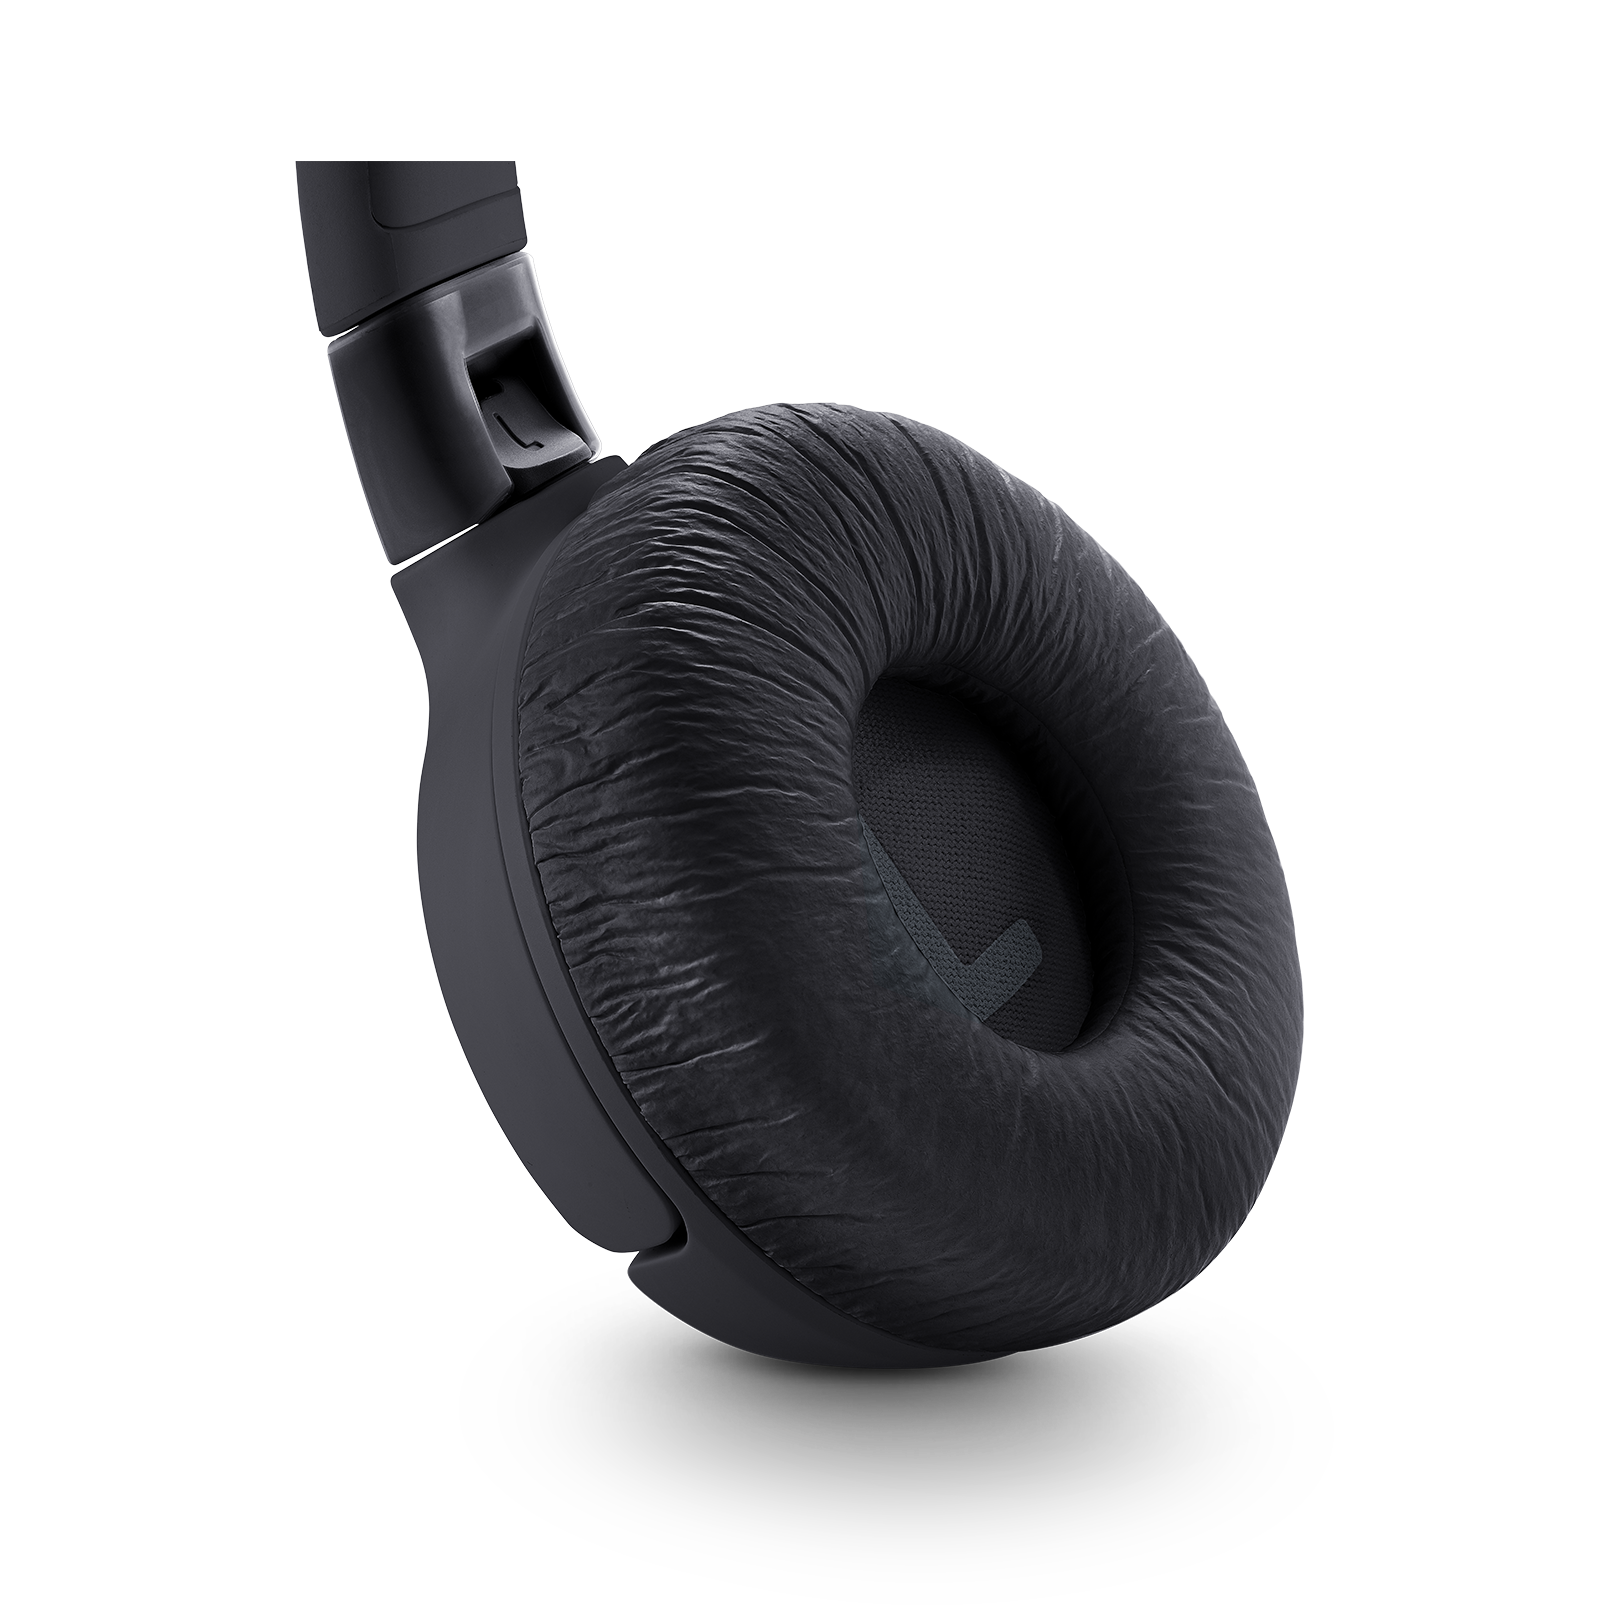 JBL TUNE 600BTNC - Black - Wireless, on-ear, active noise-cancelling headphones. - Detailshot 2